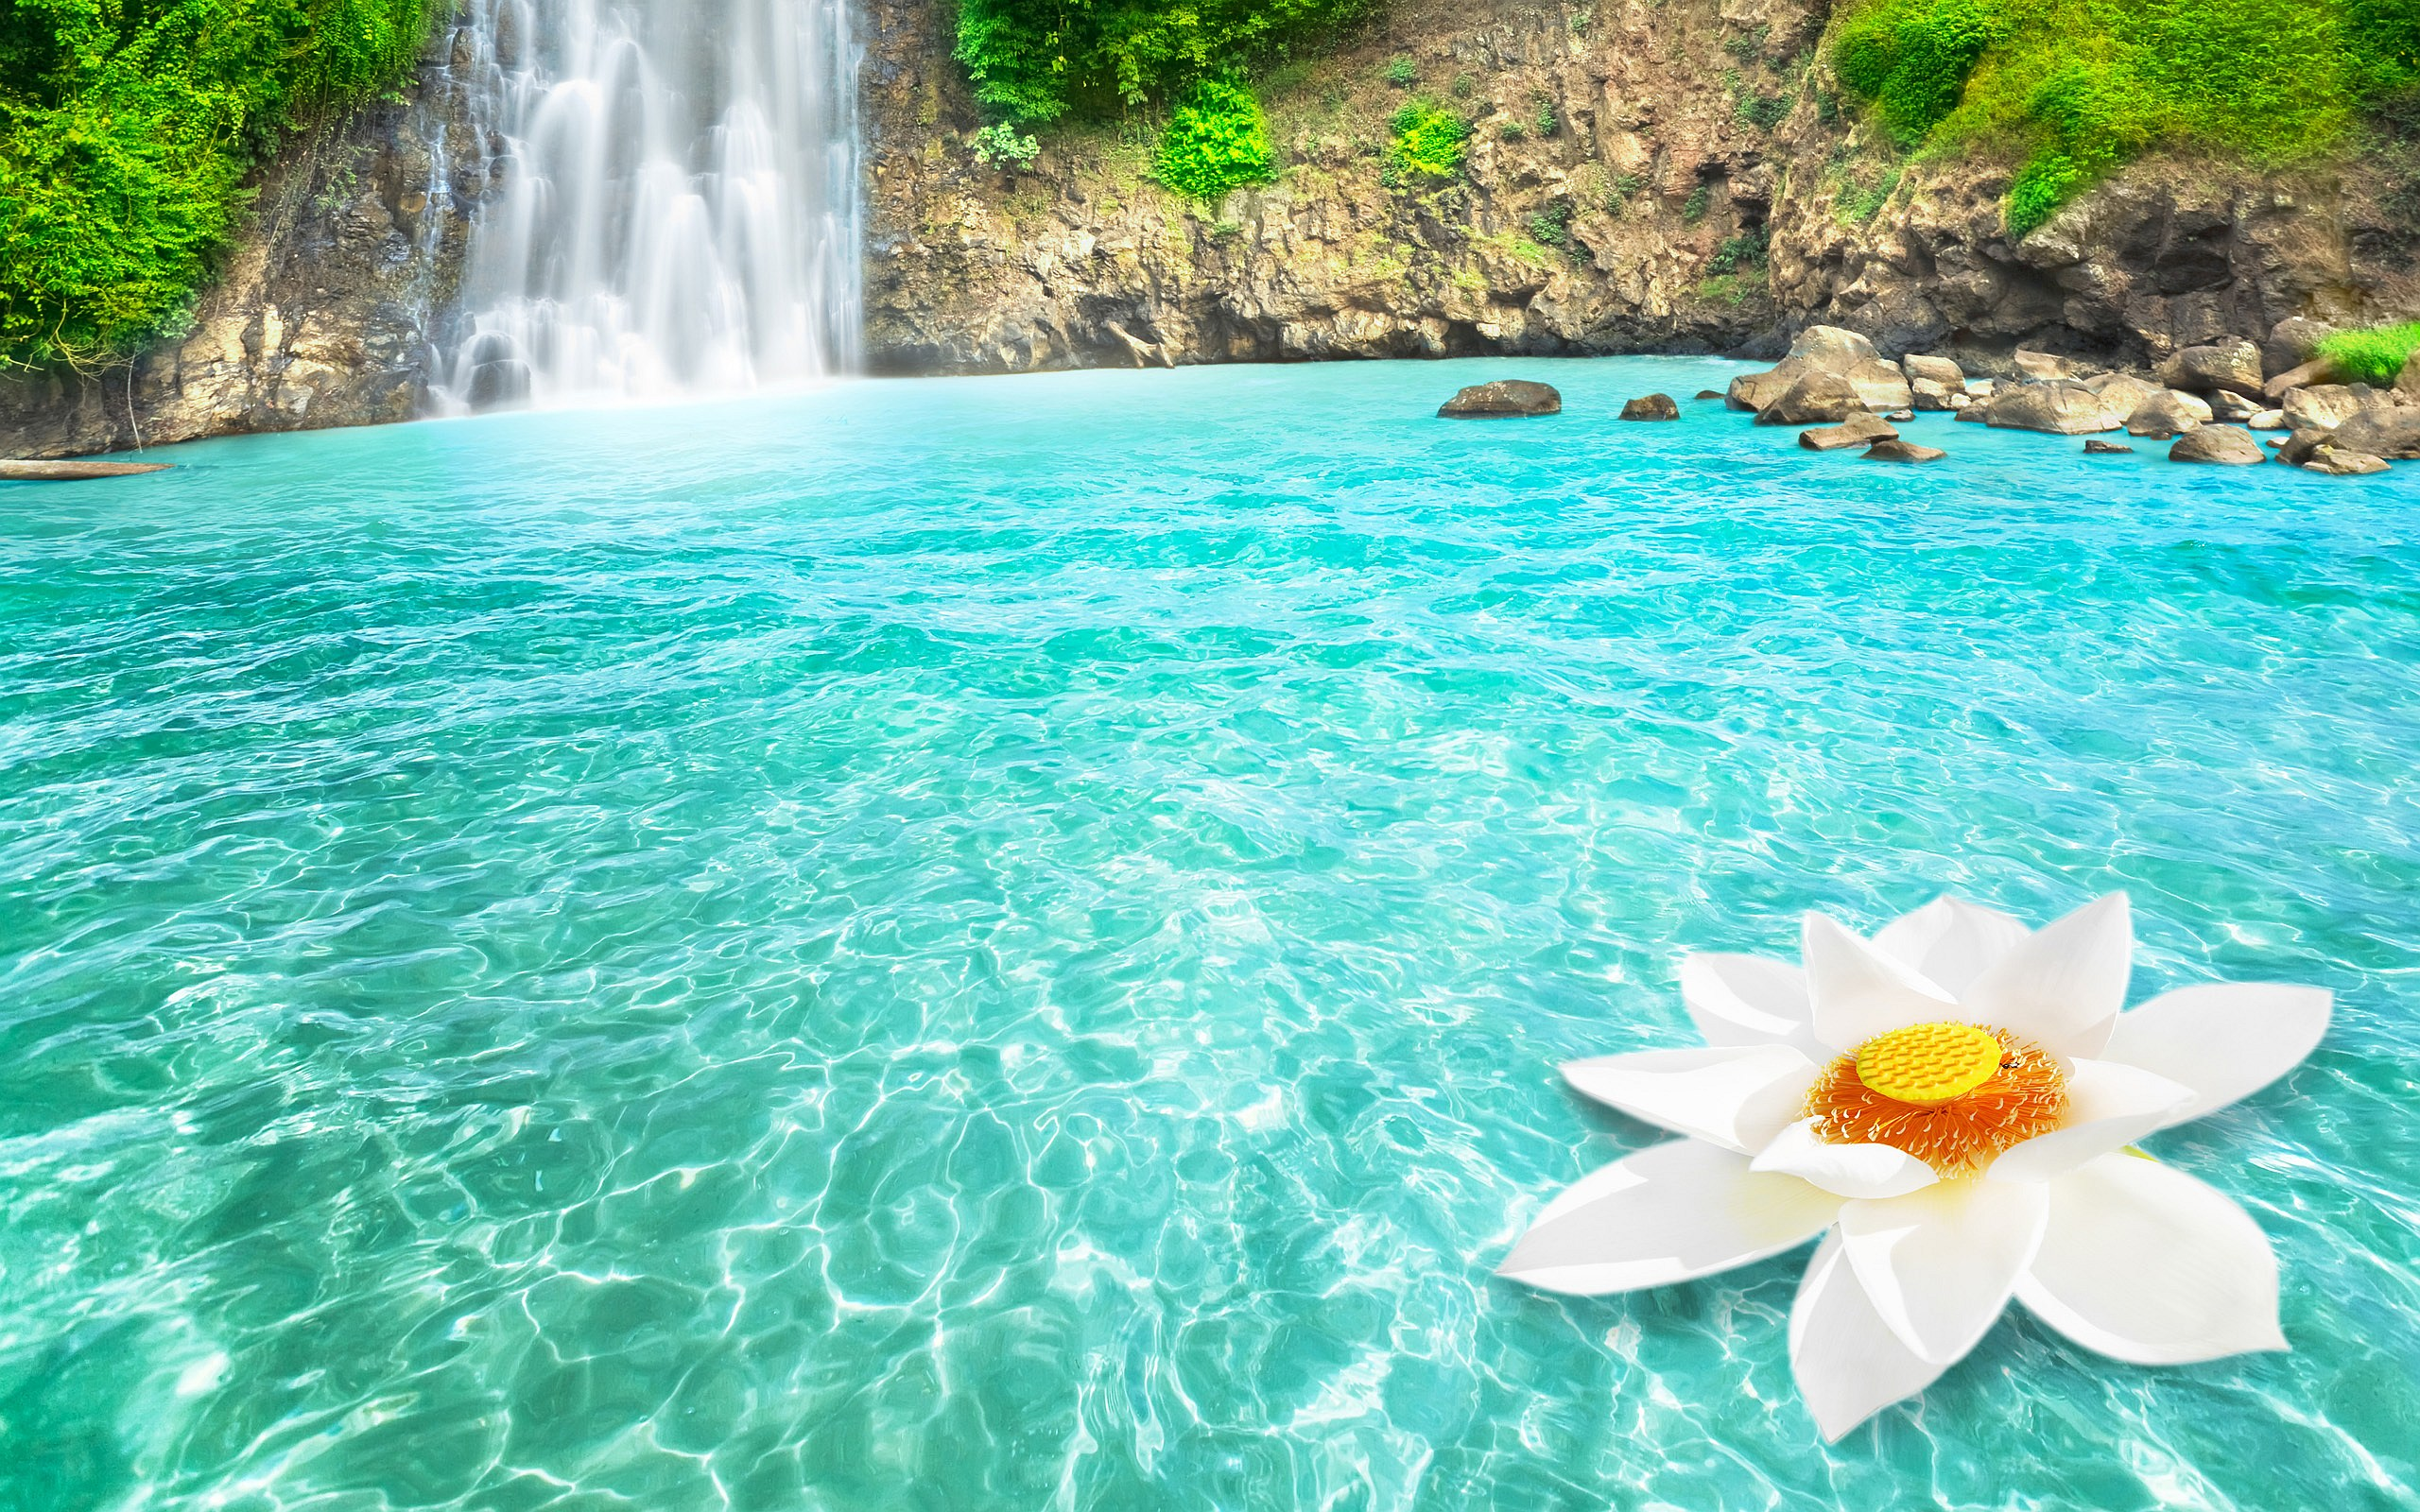 Tropical Waterfall And White Lotus Full HD Wallpaper Background